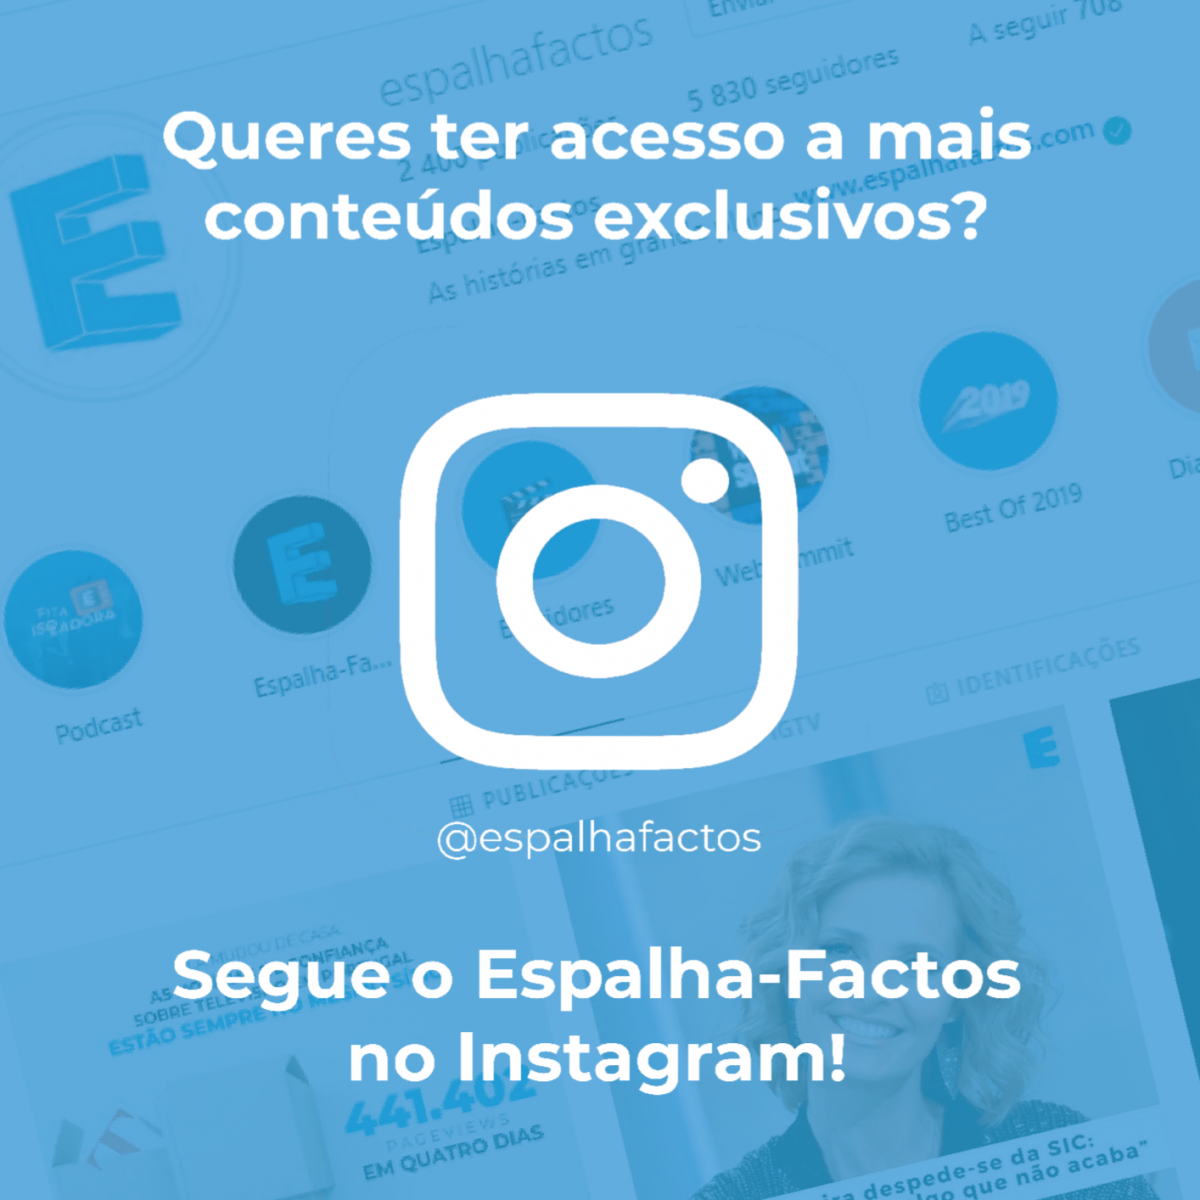 Queres ter acesso a mais conteúdos exclusivos? Segues o Espalha-Factos nos Instagram em @espalhafactos.